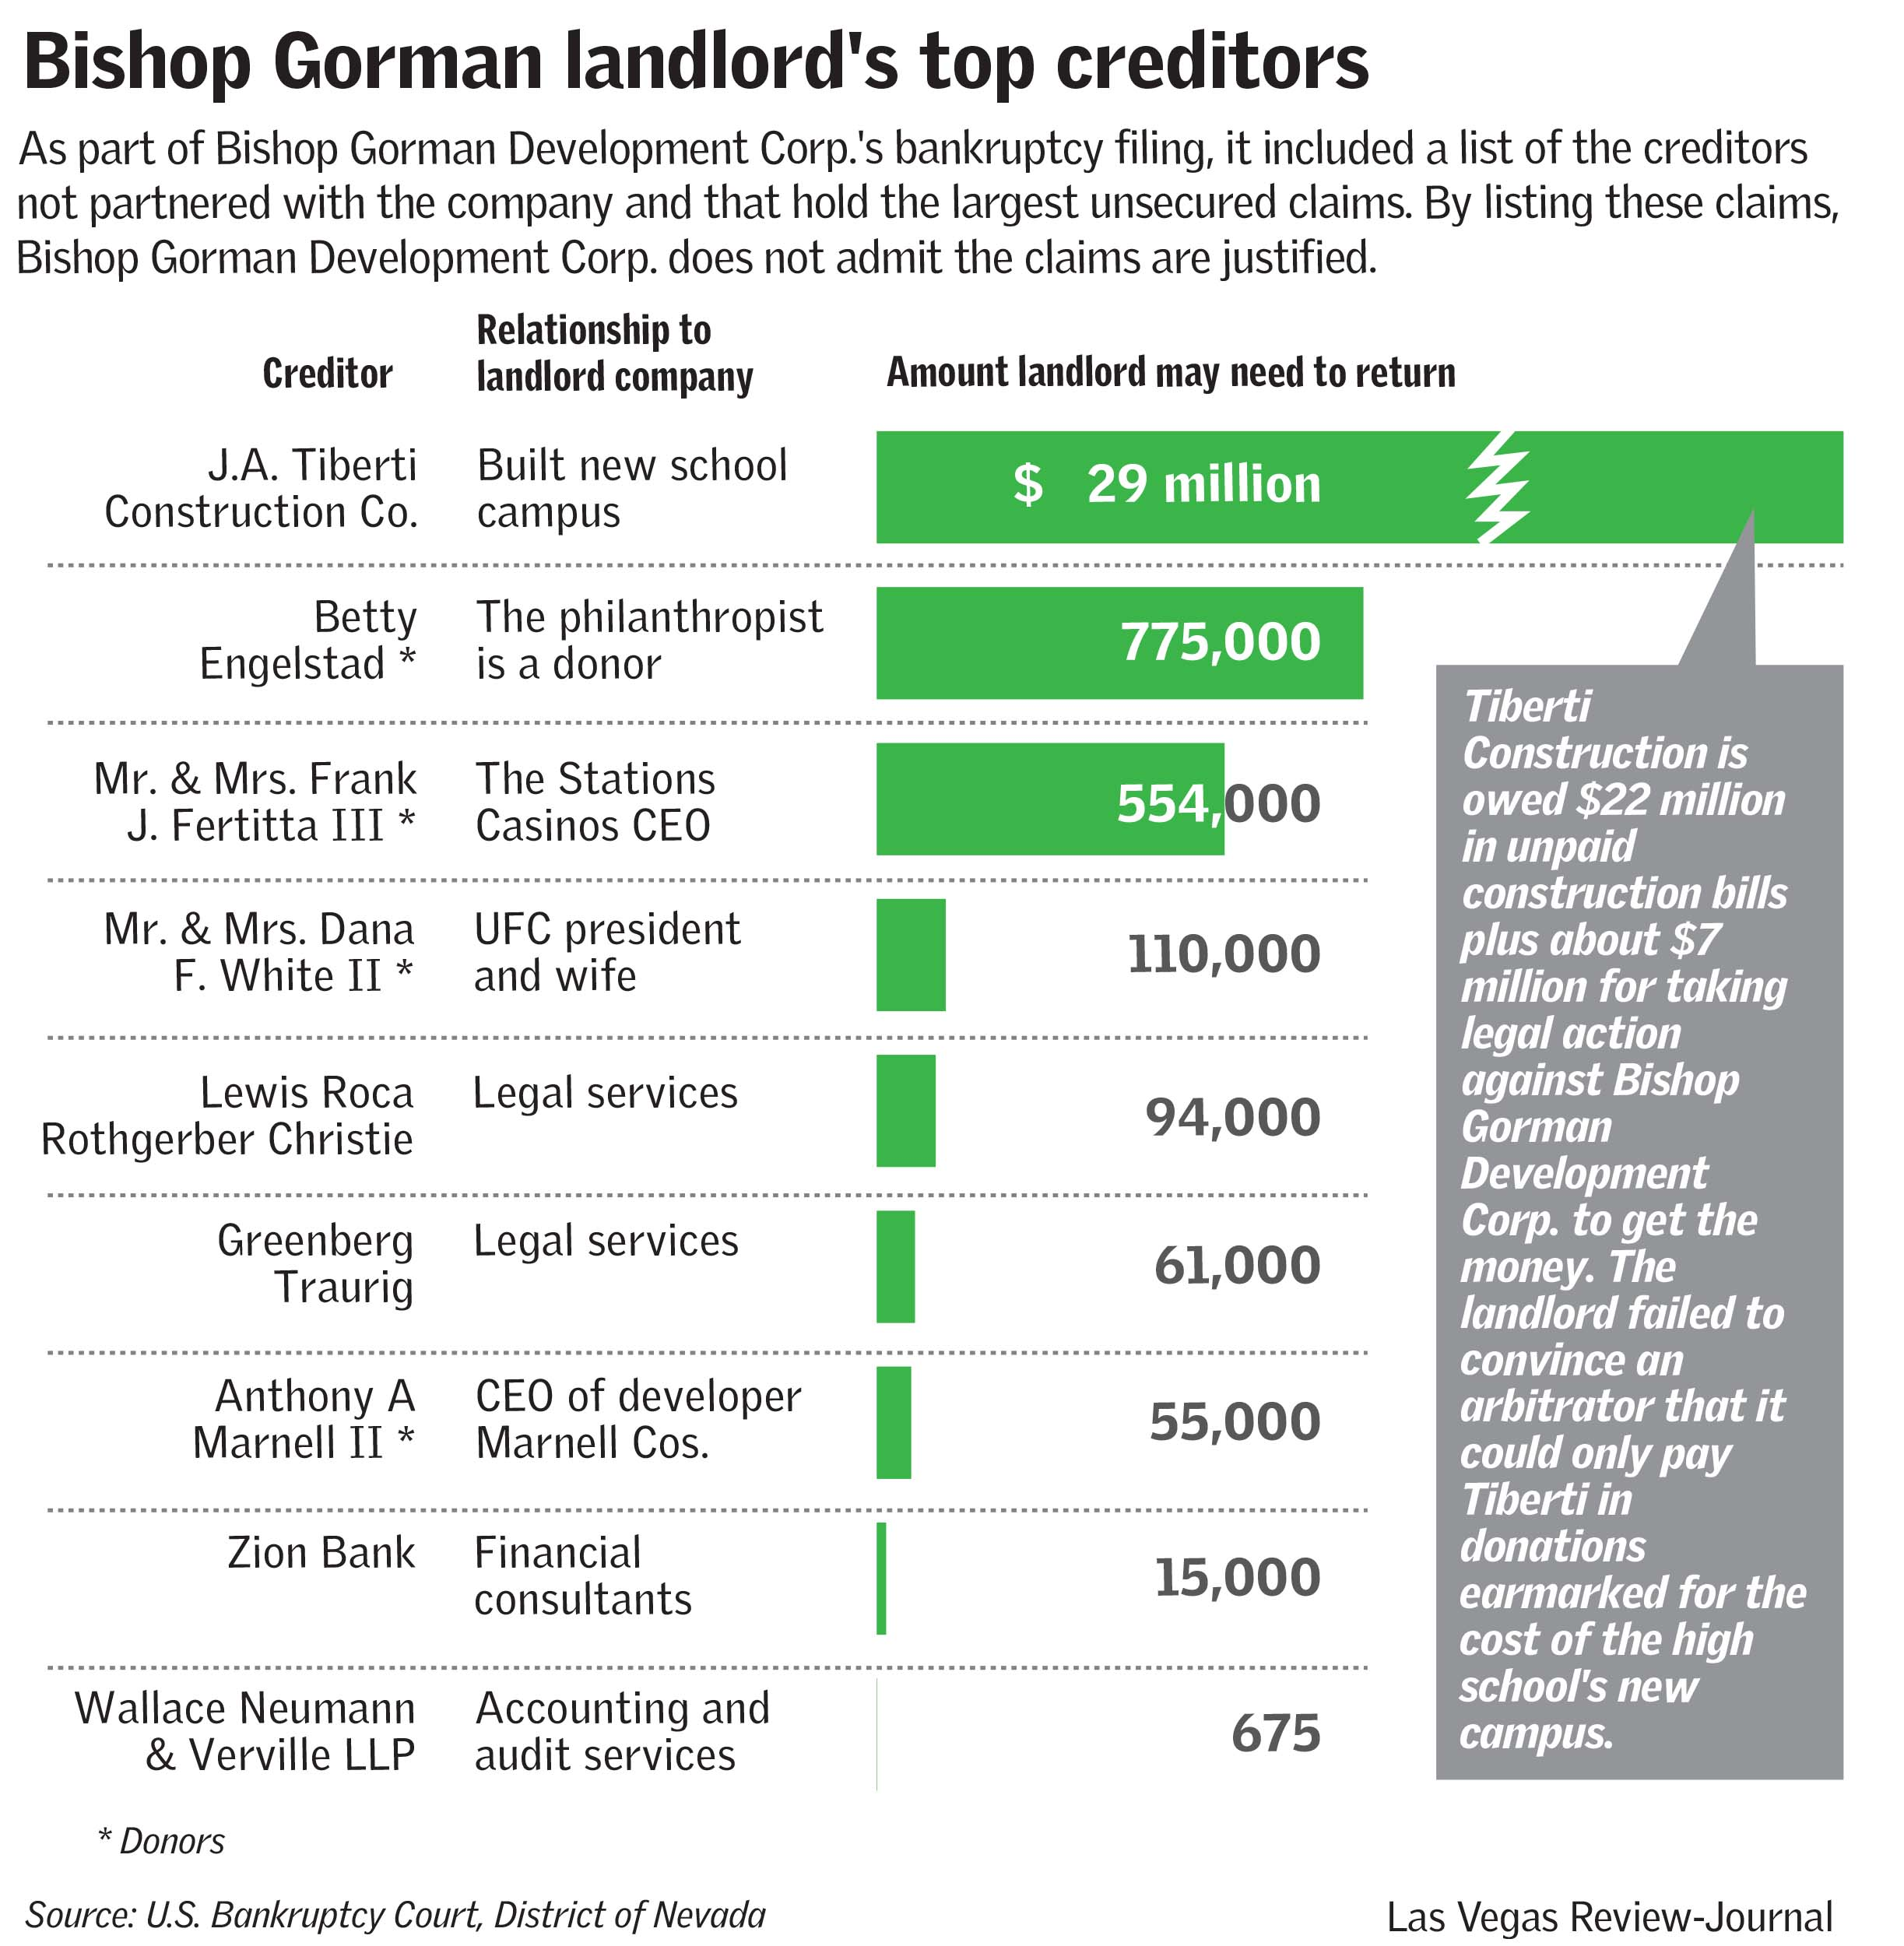 Bishop Gorman creditors (Las Vegas Review-Journal)